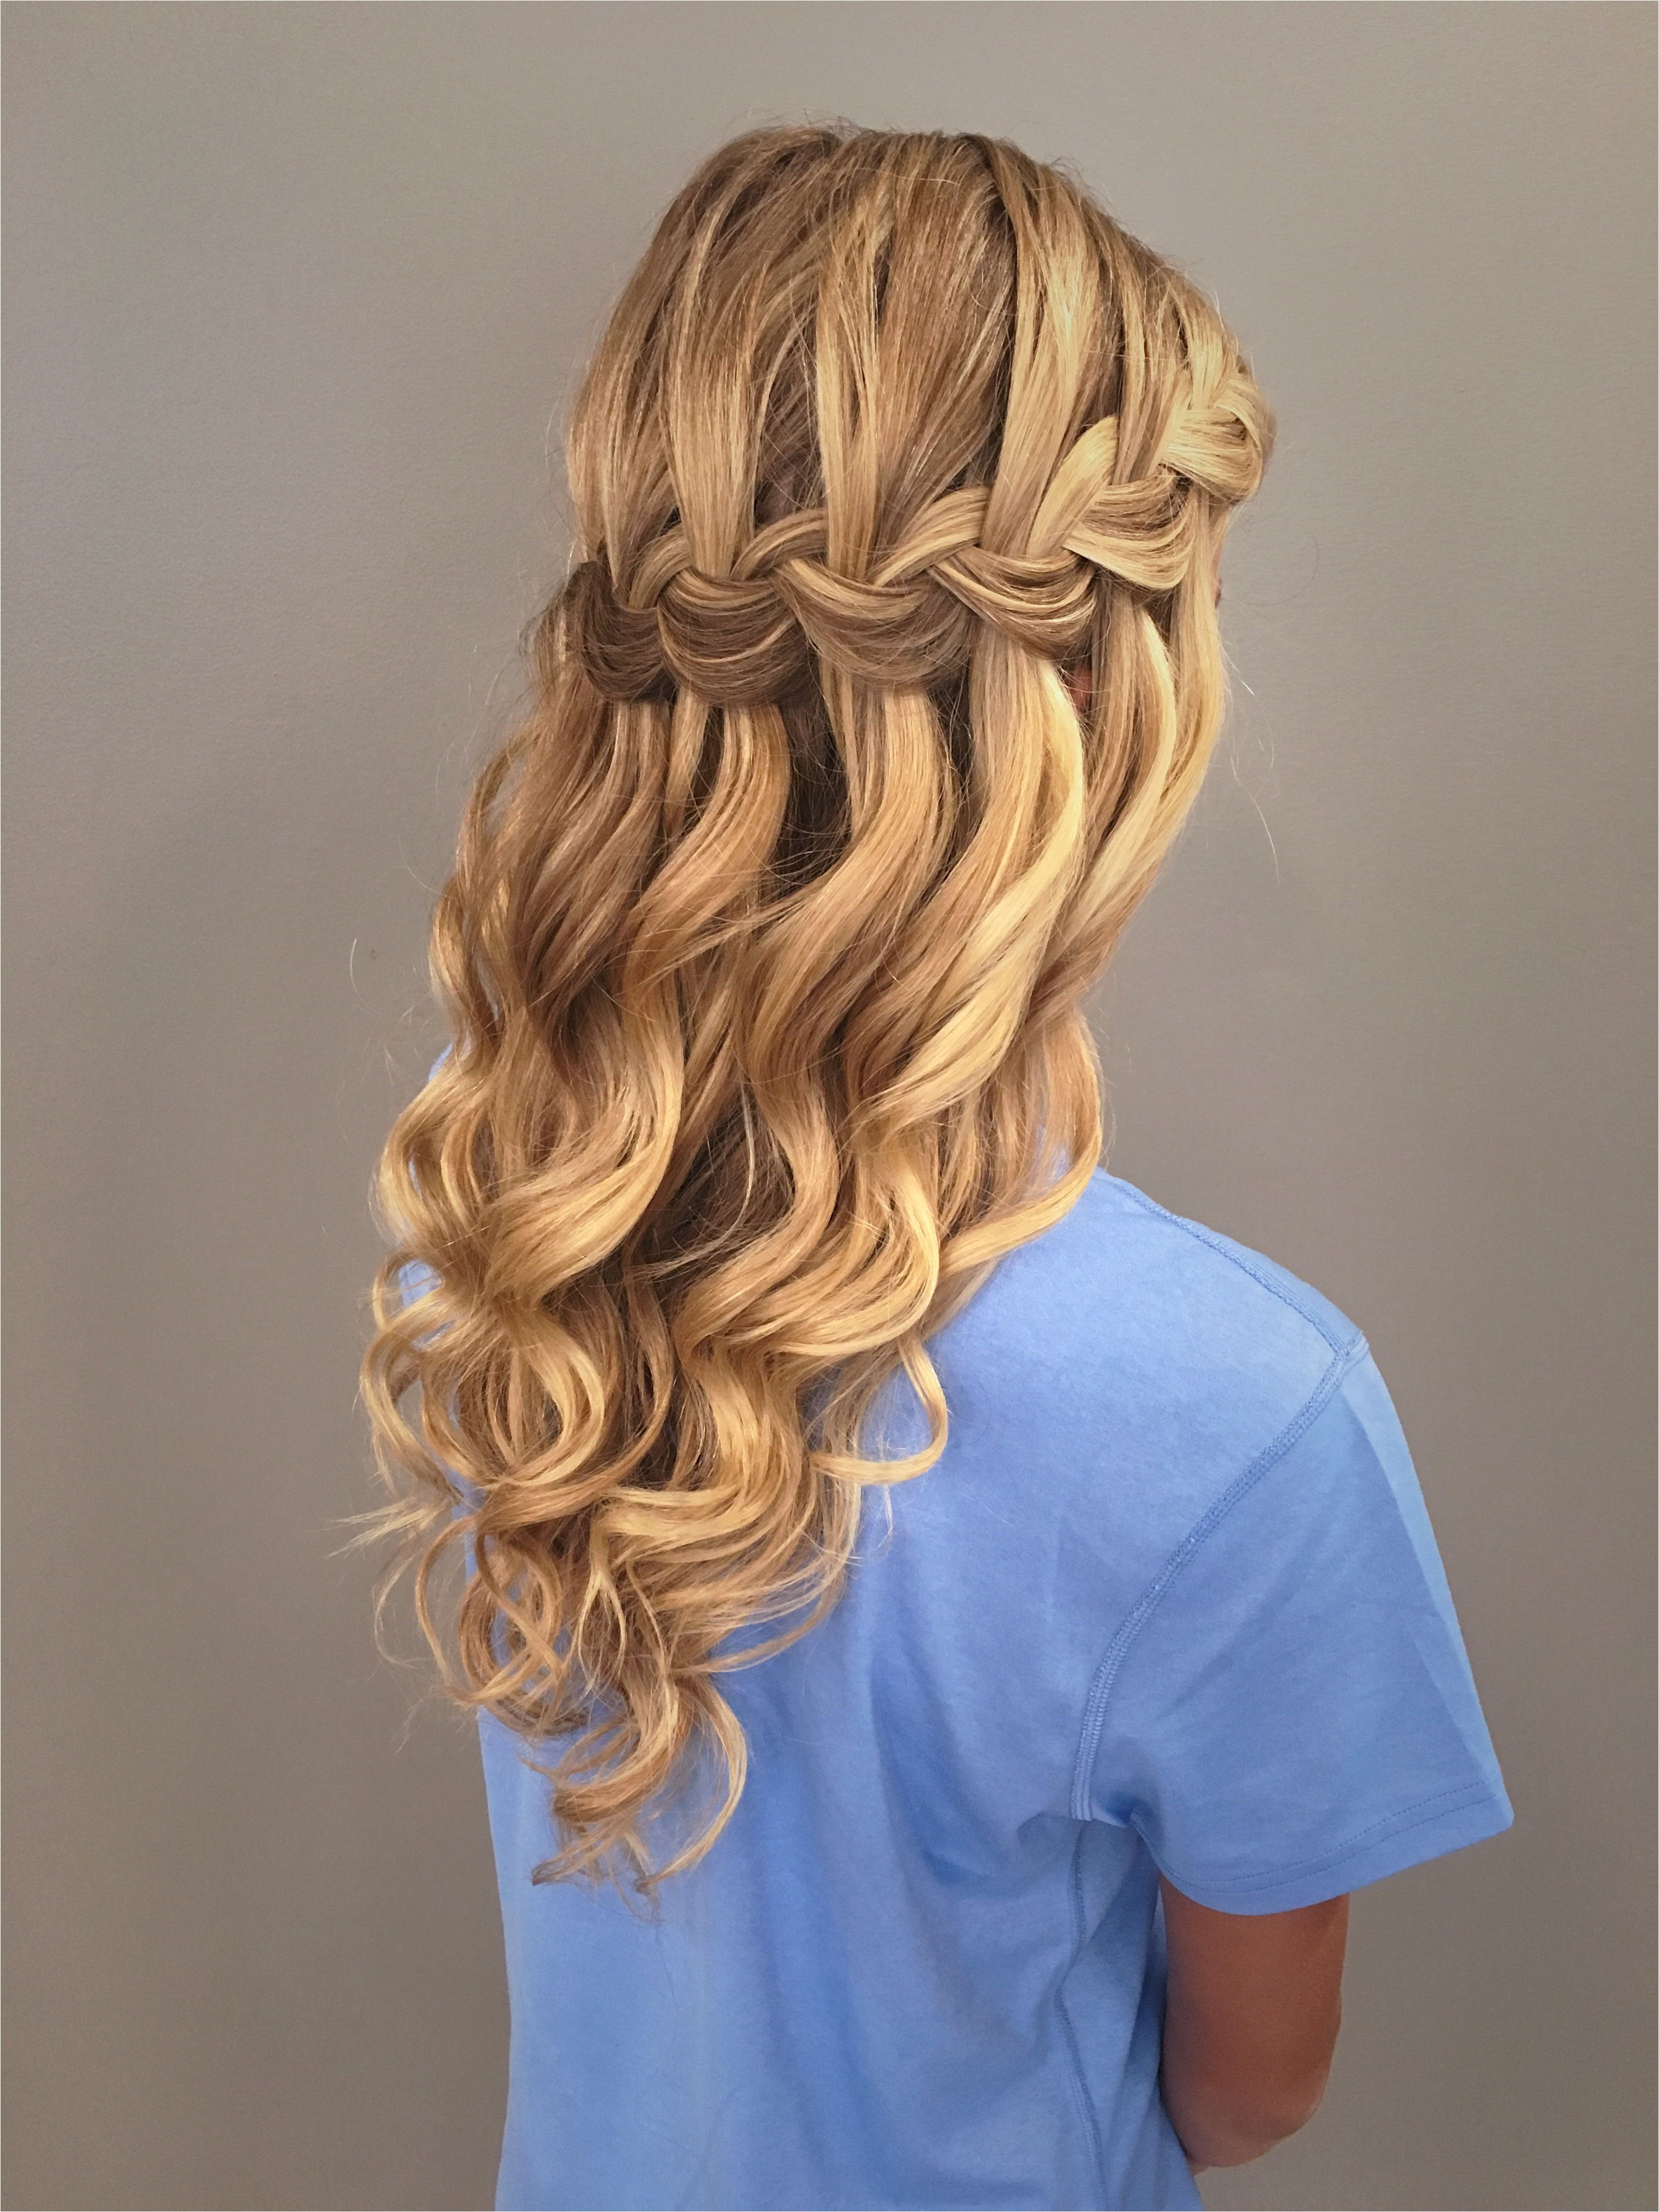 Waterfall braid with mermaid waves Great bridal prom or home ing hairstyle